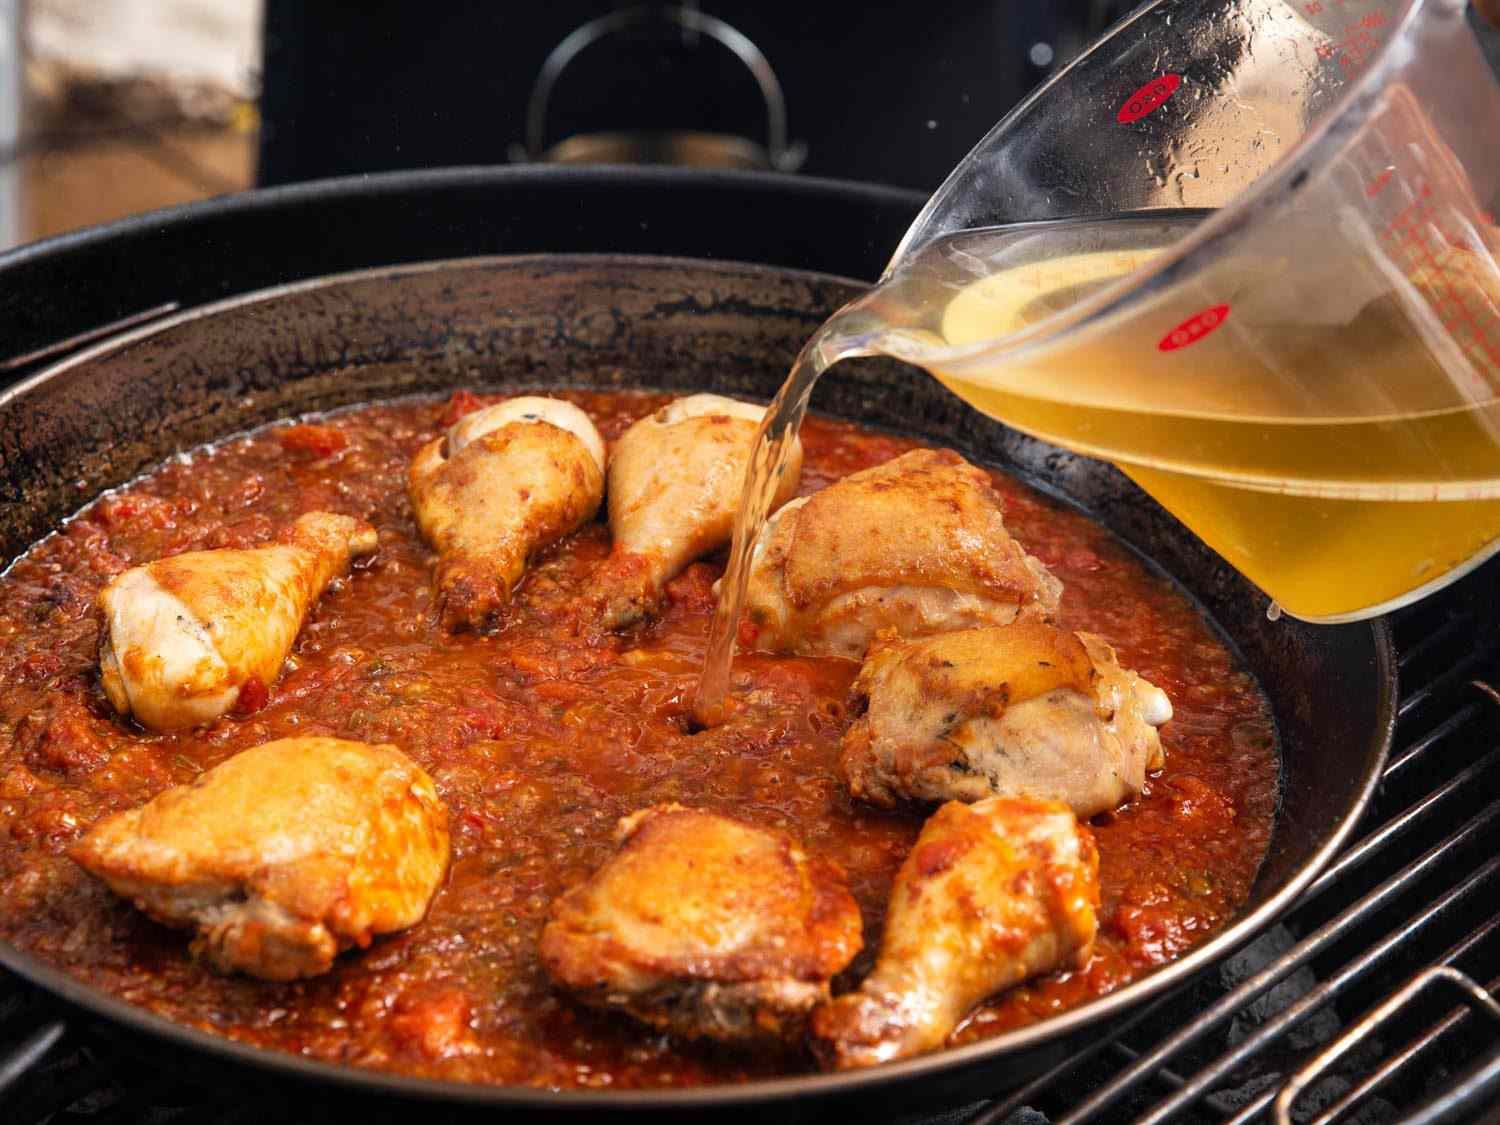 Adding stock to the paella pan after browning the proteins and aromatics.